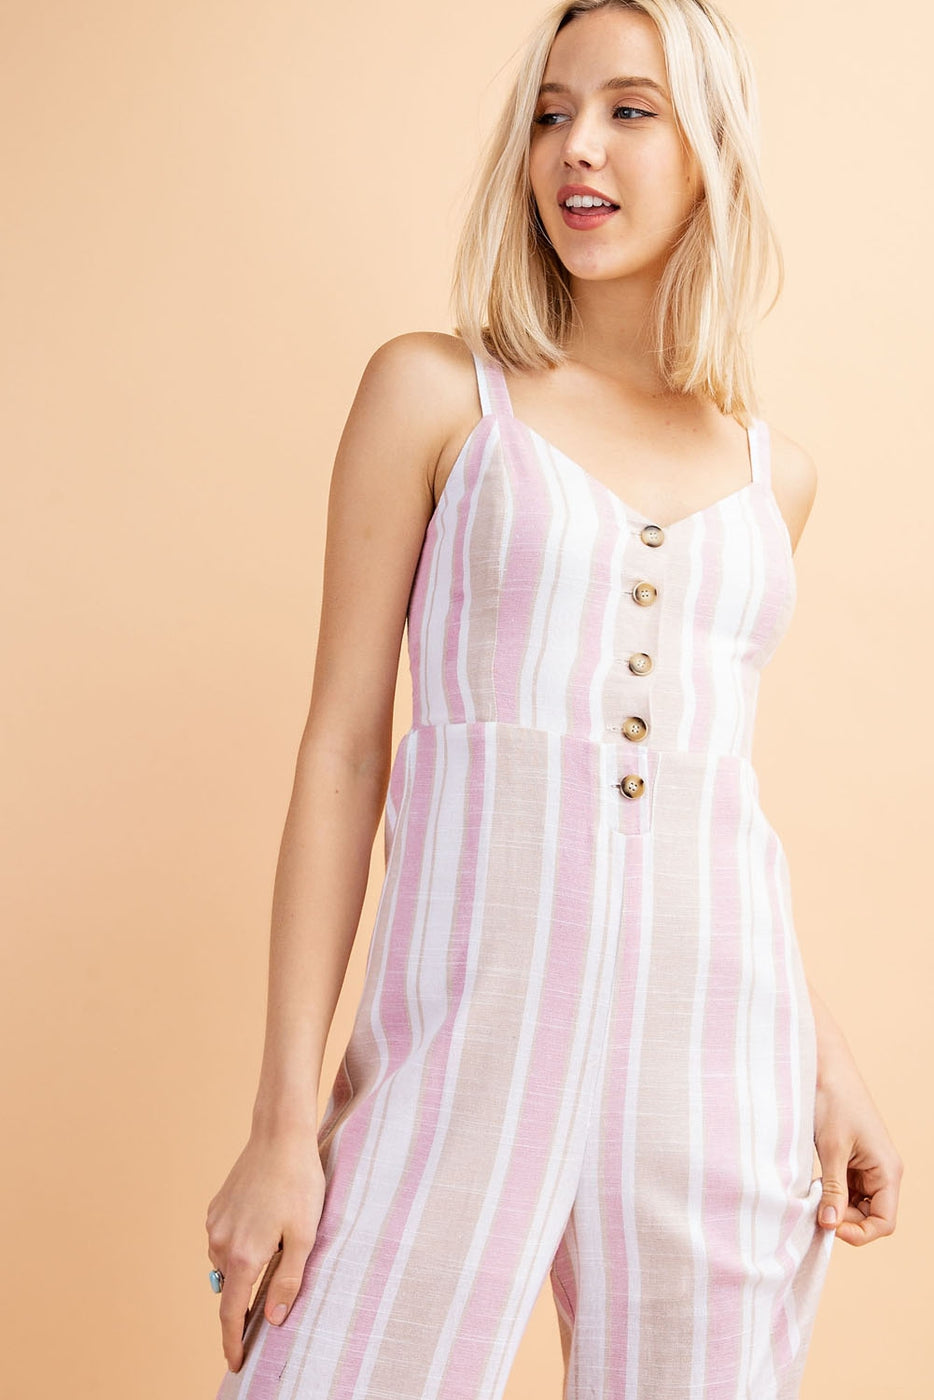 V-Neck Back Tie Stripe Jumpsuit With Front Buttons In White-Rose-Taupe - Siin Bees